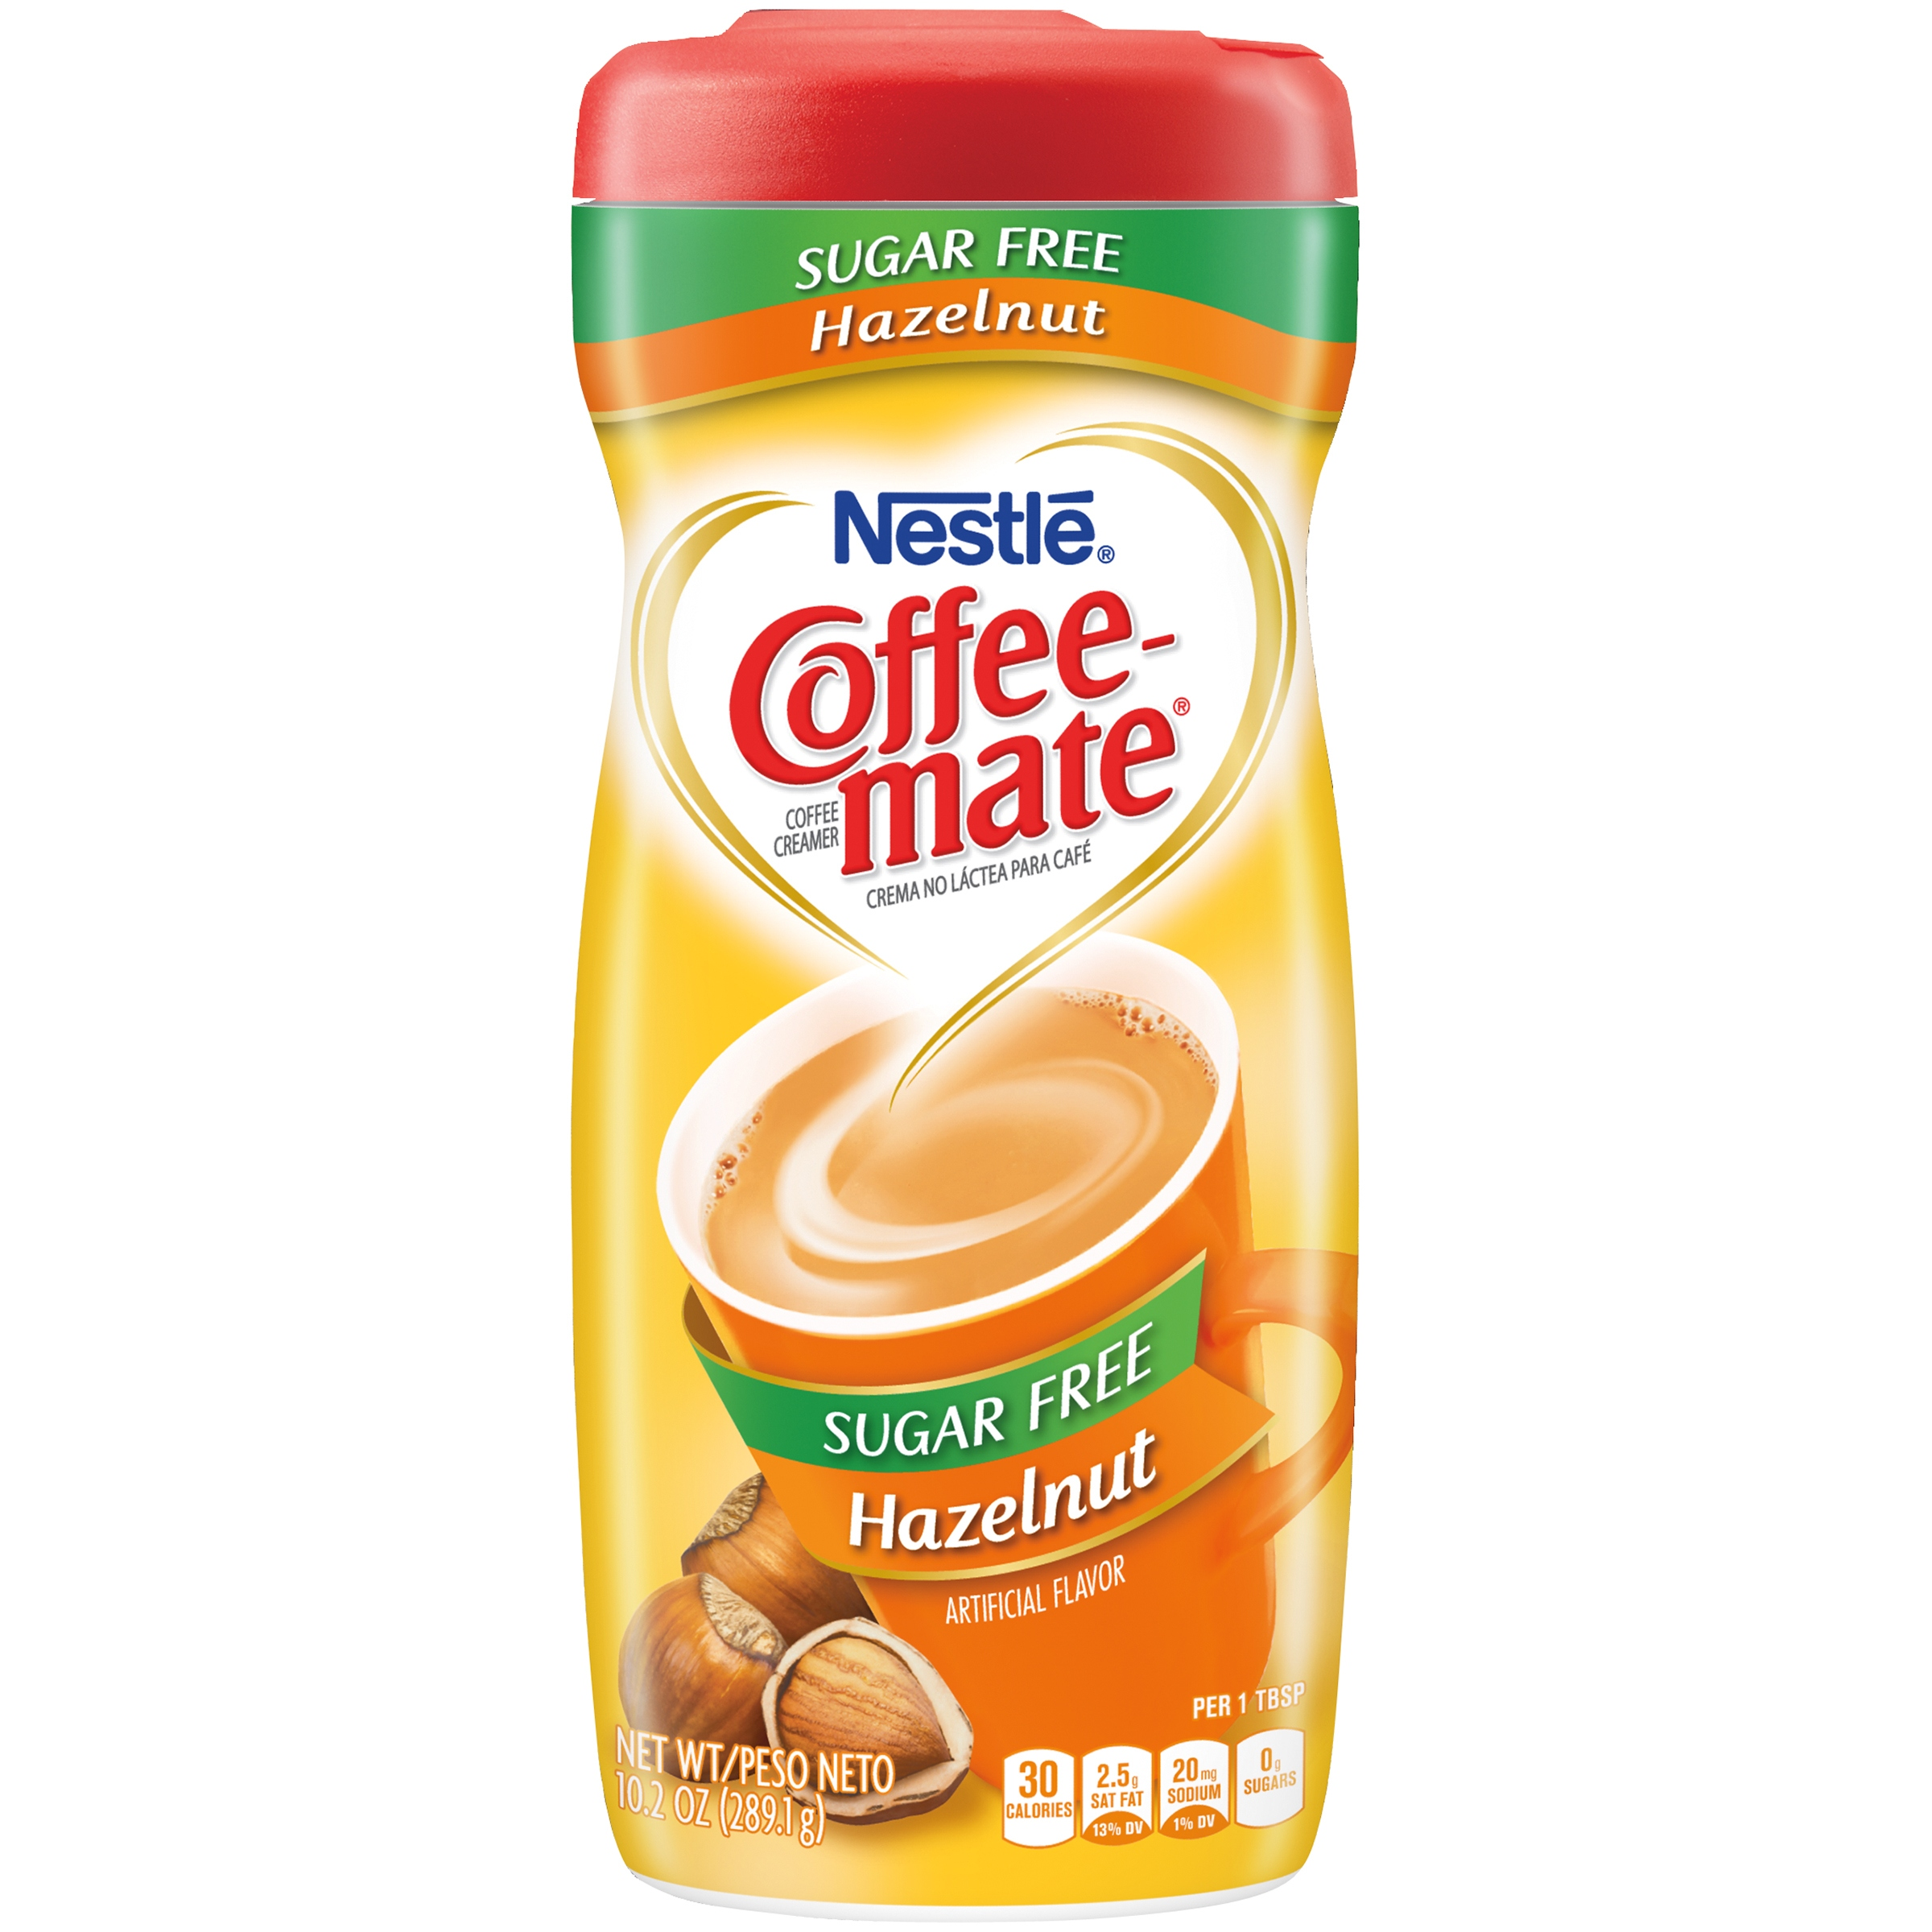 (3 pack) COFFEE MATE Sugar Free Hazelnut Powder Coffee Creamer 10.2 oz. Canister